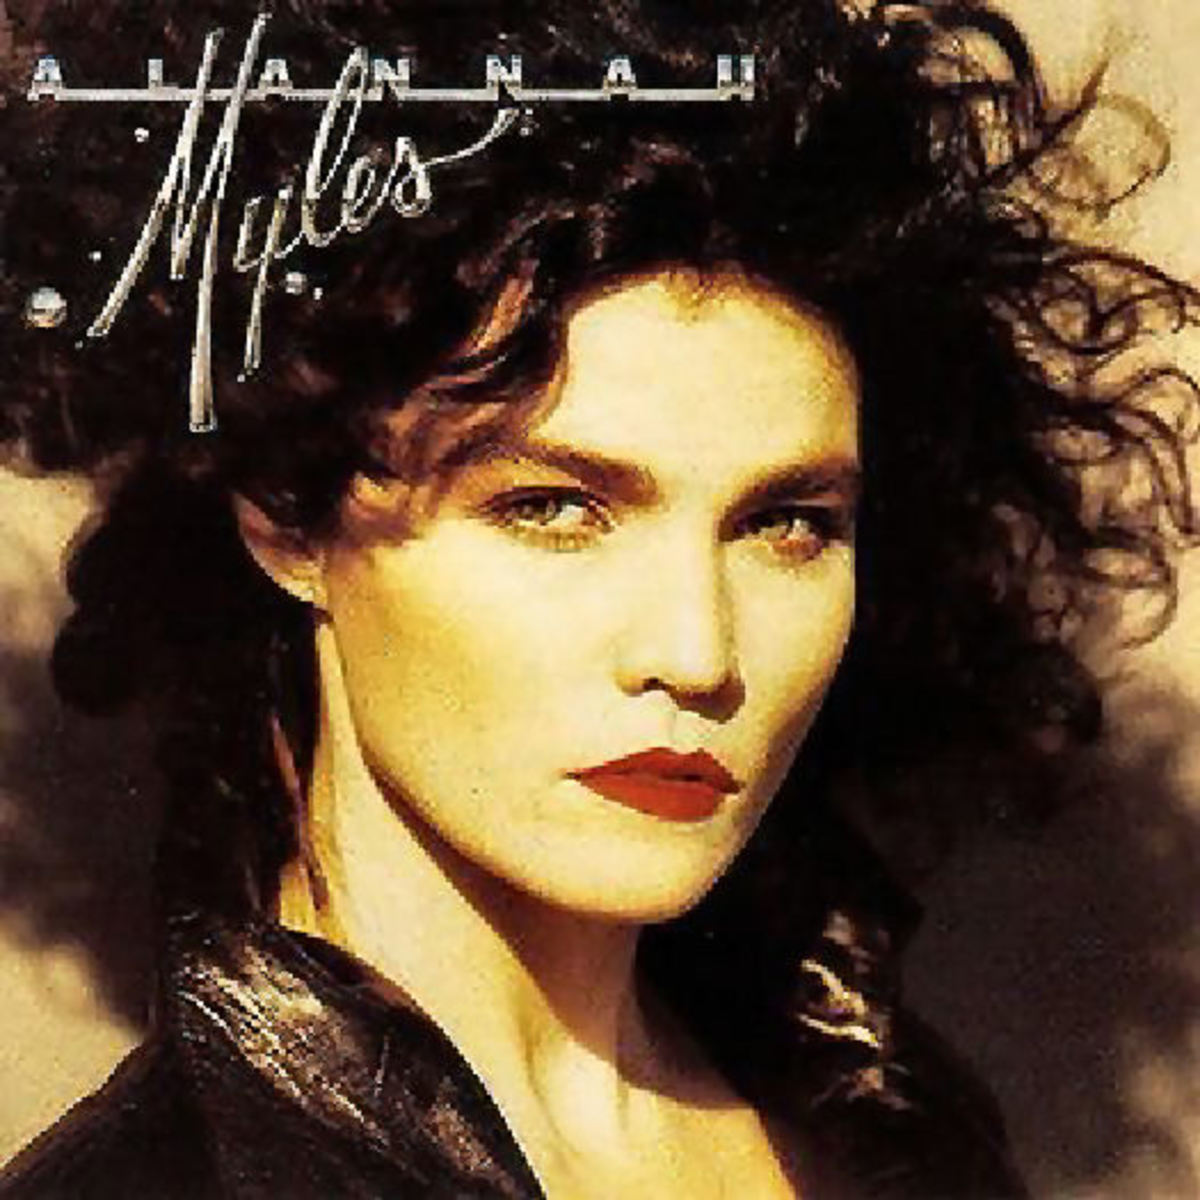 """THE - Album that started it.  """"Alannah Myles"""".  In all honesty I was into AC DC back then.  I did NOT know who 'Alannah Myles' was.  But I bought this album a couple of times, for """"aesthetic"""" reasons.  ~Then~ I actually listened to it"""